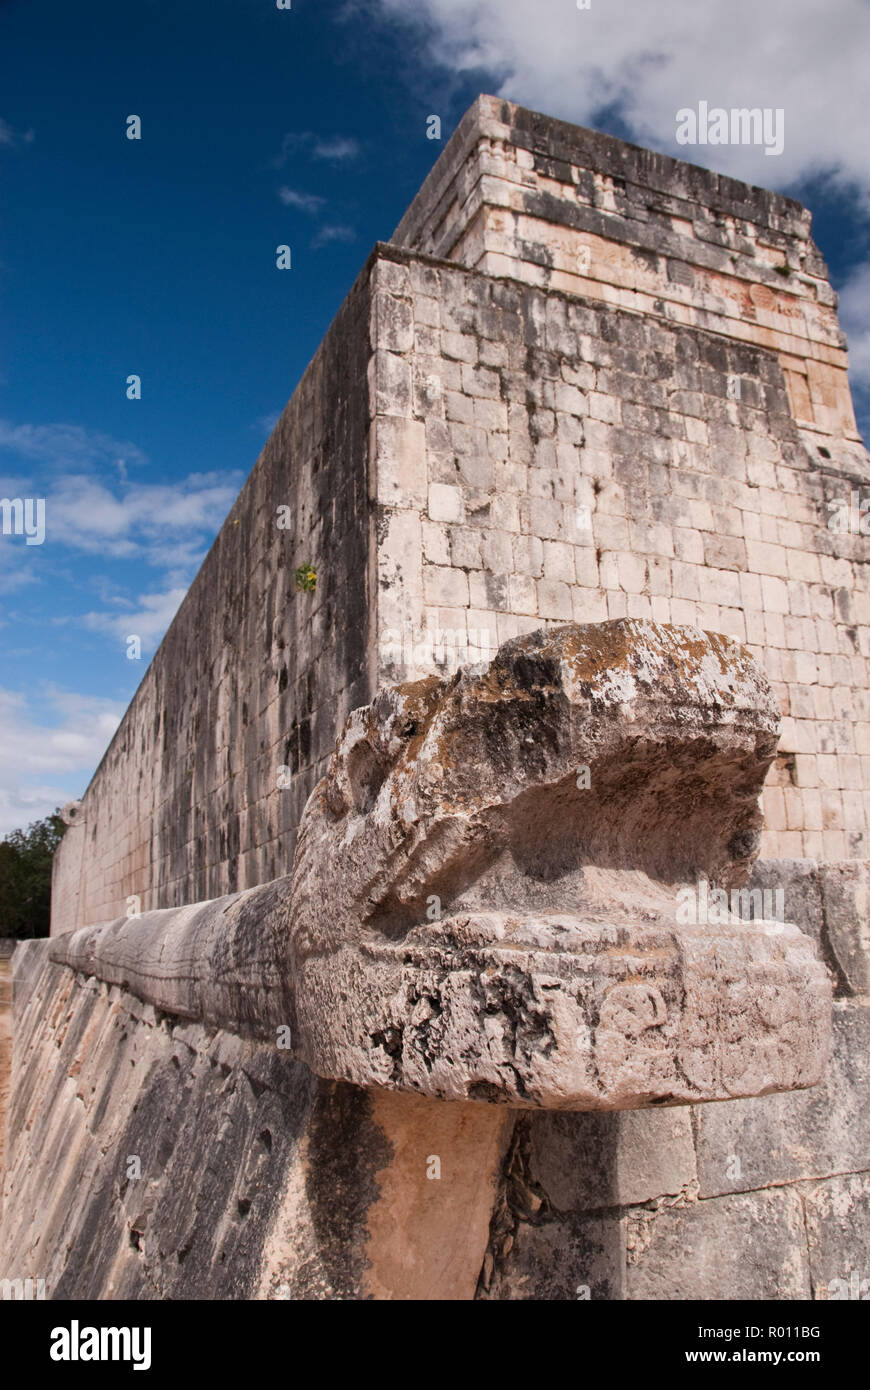 A Kukulkan sculpture (Feathered Serpent), the Maya snake deity, at the Great Ball Court (Gran Juego de Pelota), Chichen Itza, Mexico. - Stock Image